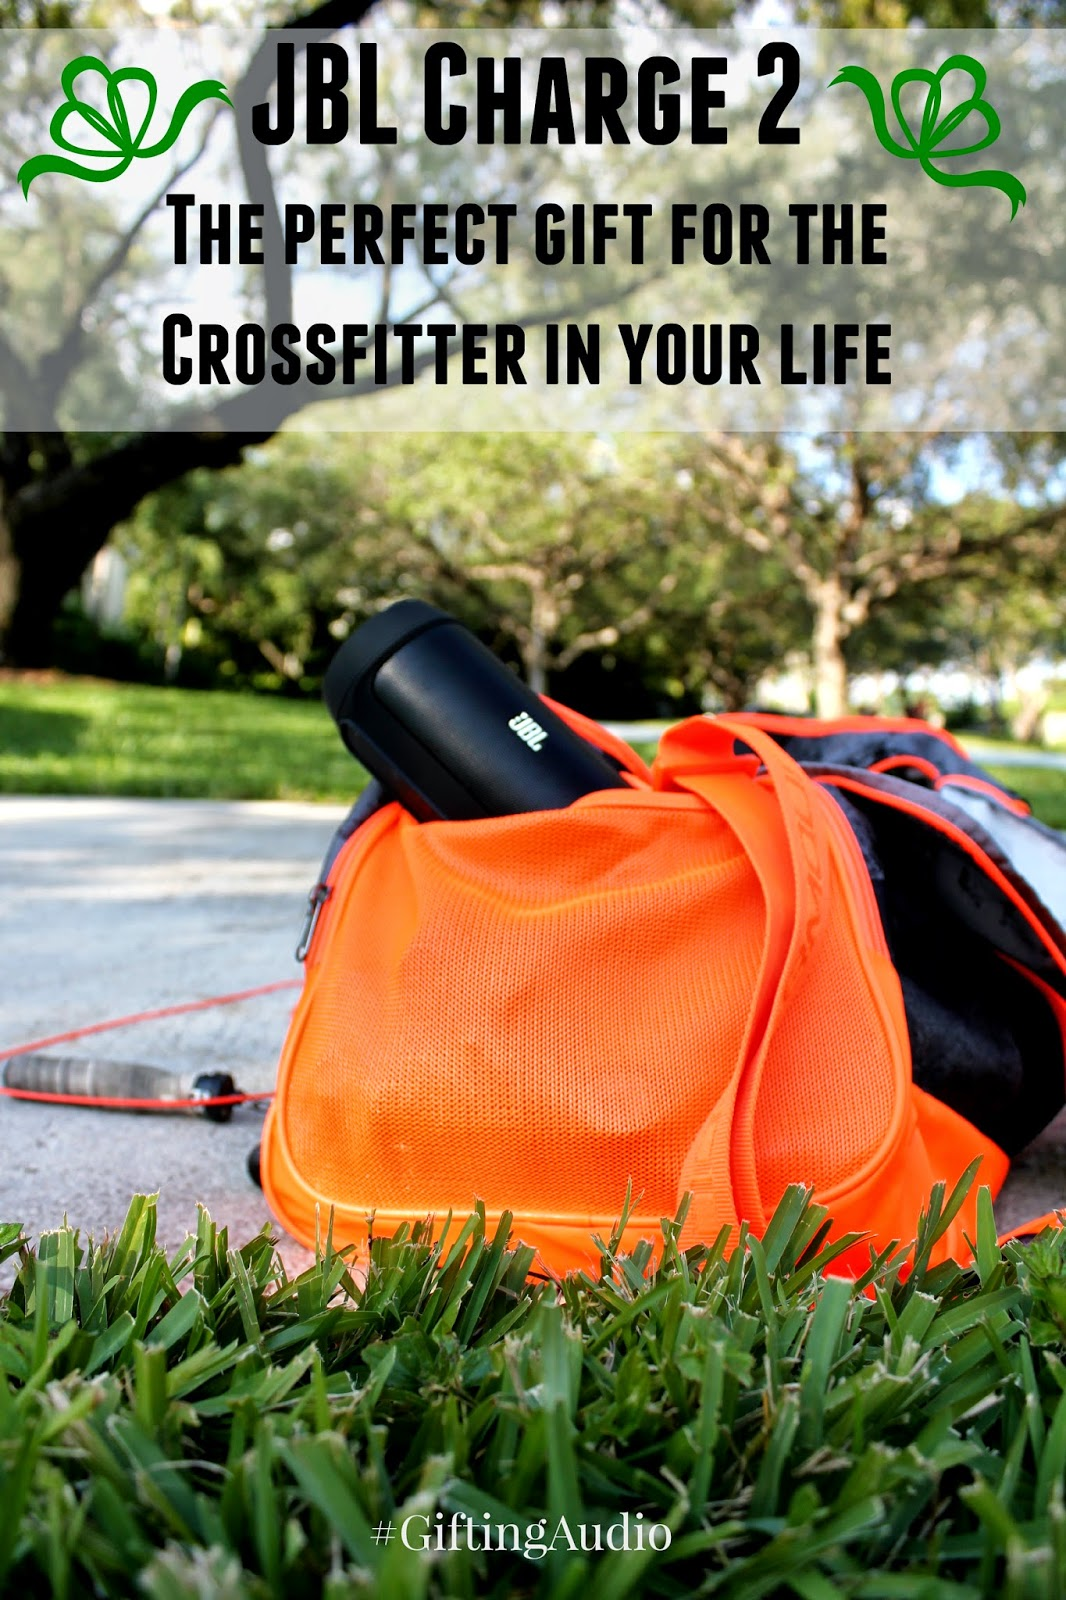 JBL Charge 2: The Perfect Gift for the Crossfitter in your life! #GiftingAudio #ad